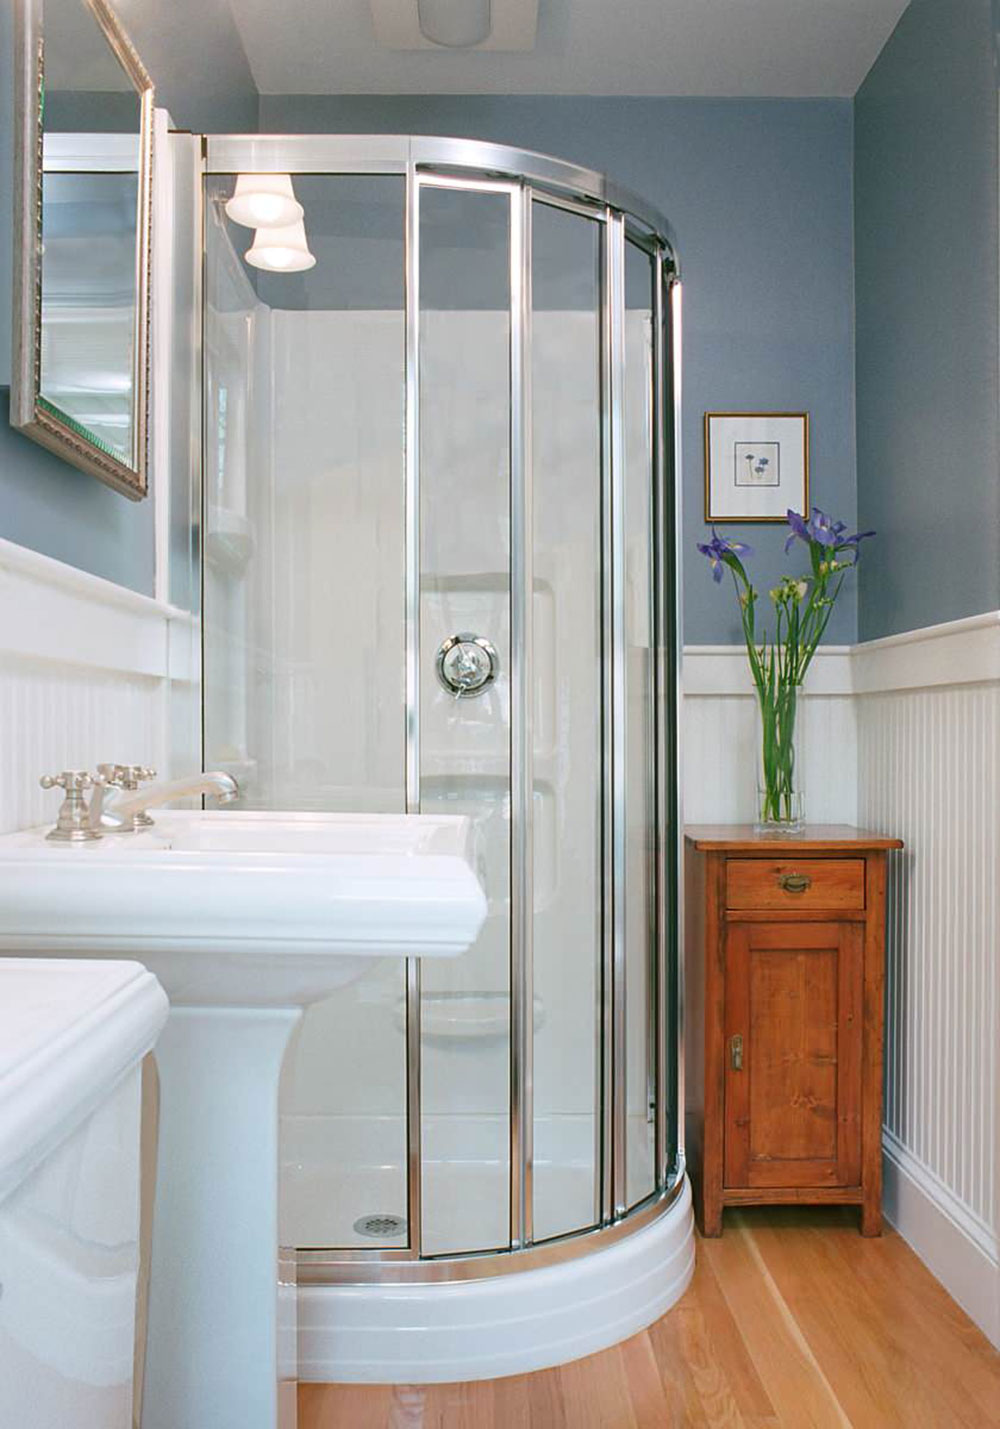 How To Make A Small Bathroom Look Bigger1 How